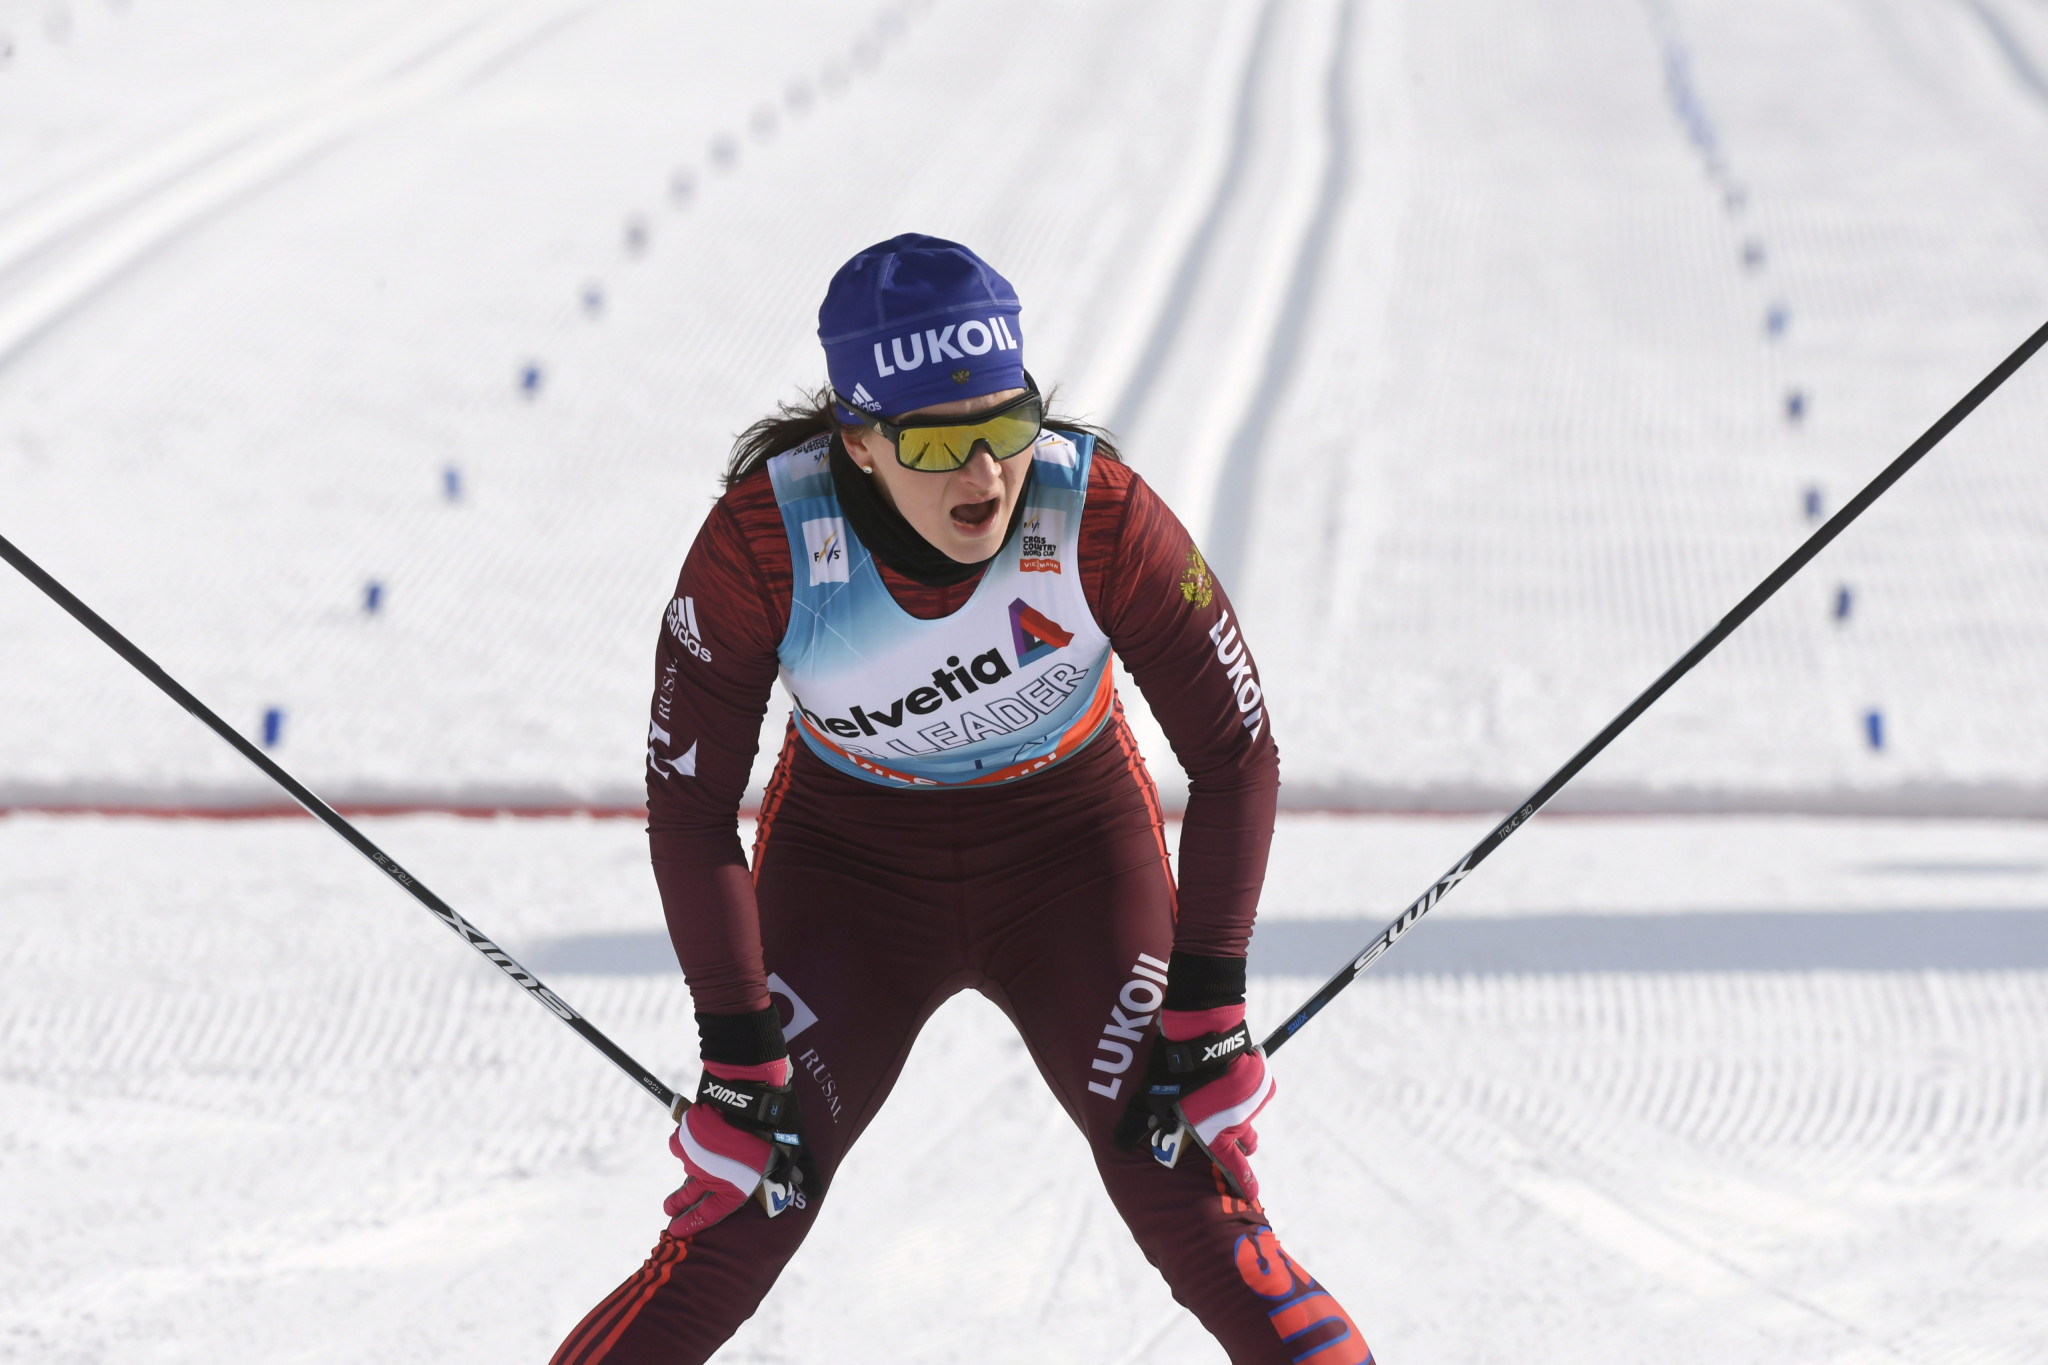 Nepryaeva gets career first FIS Cross-Country World Cup victory in second stage of Tour de Ski